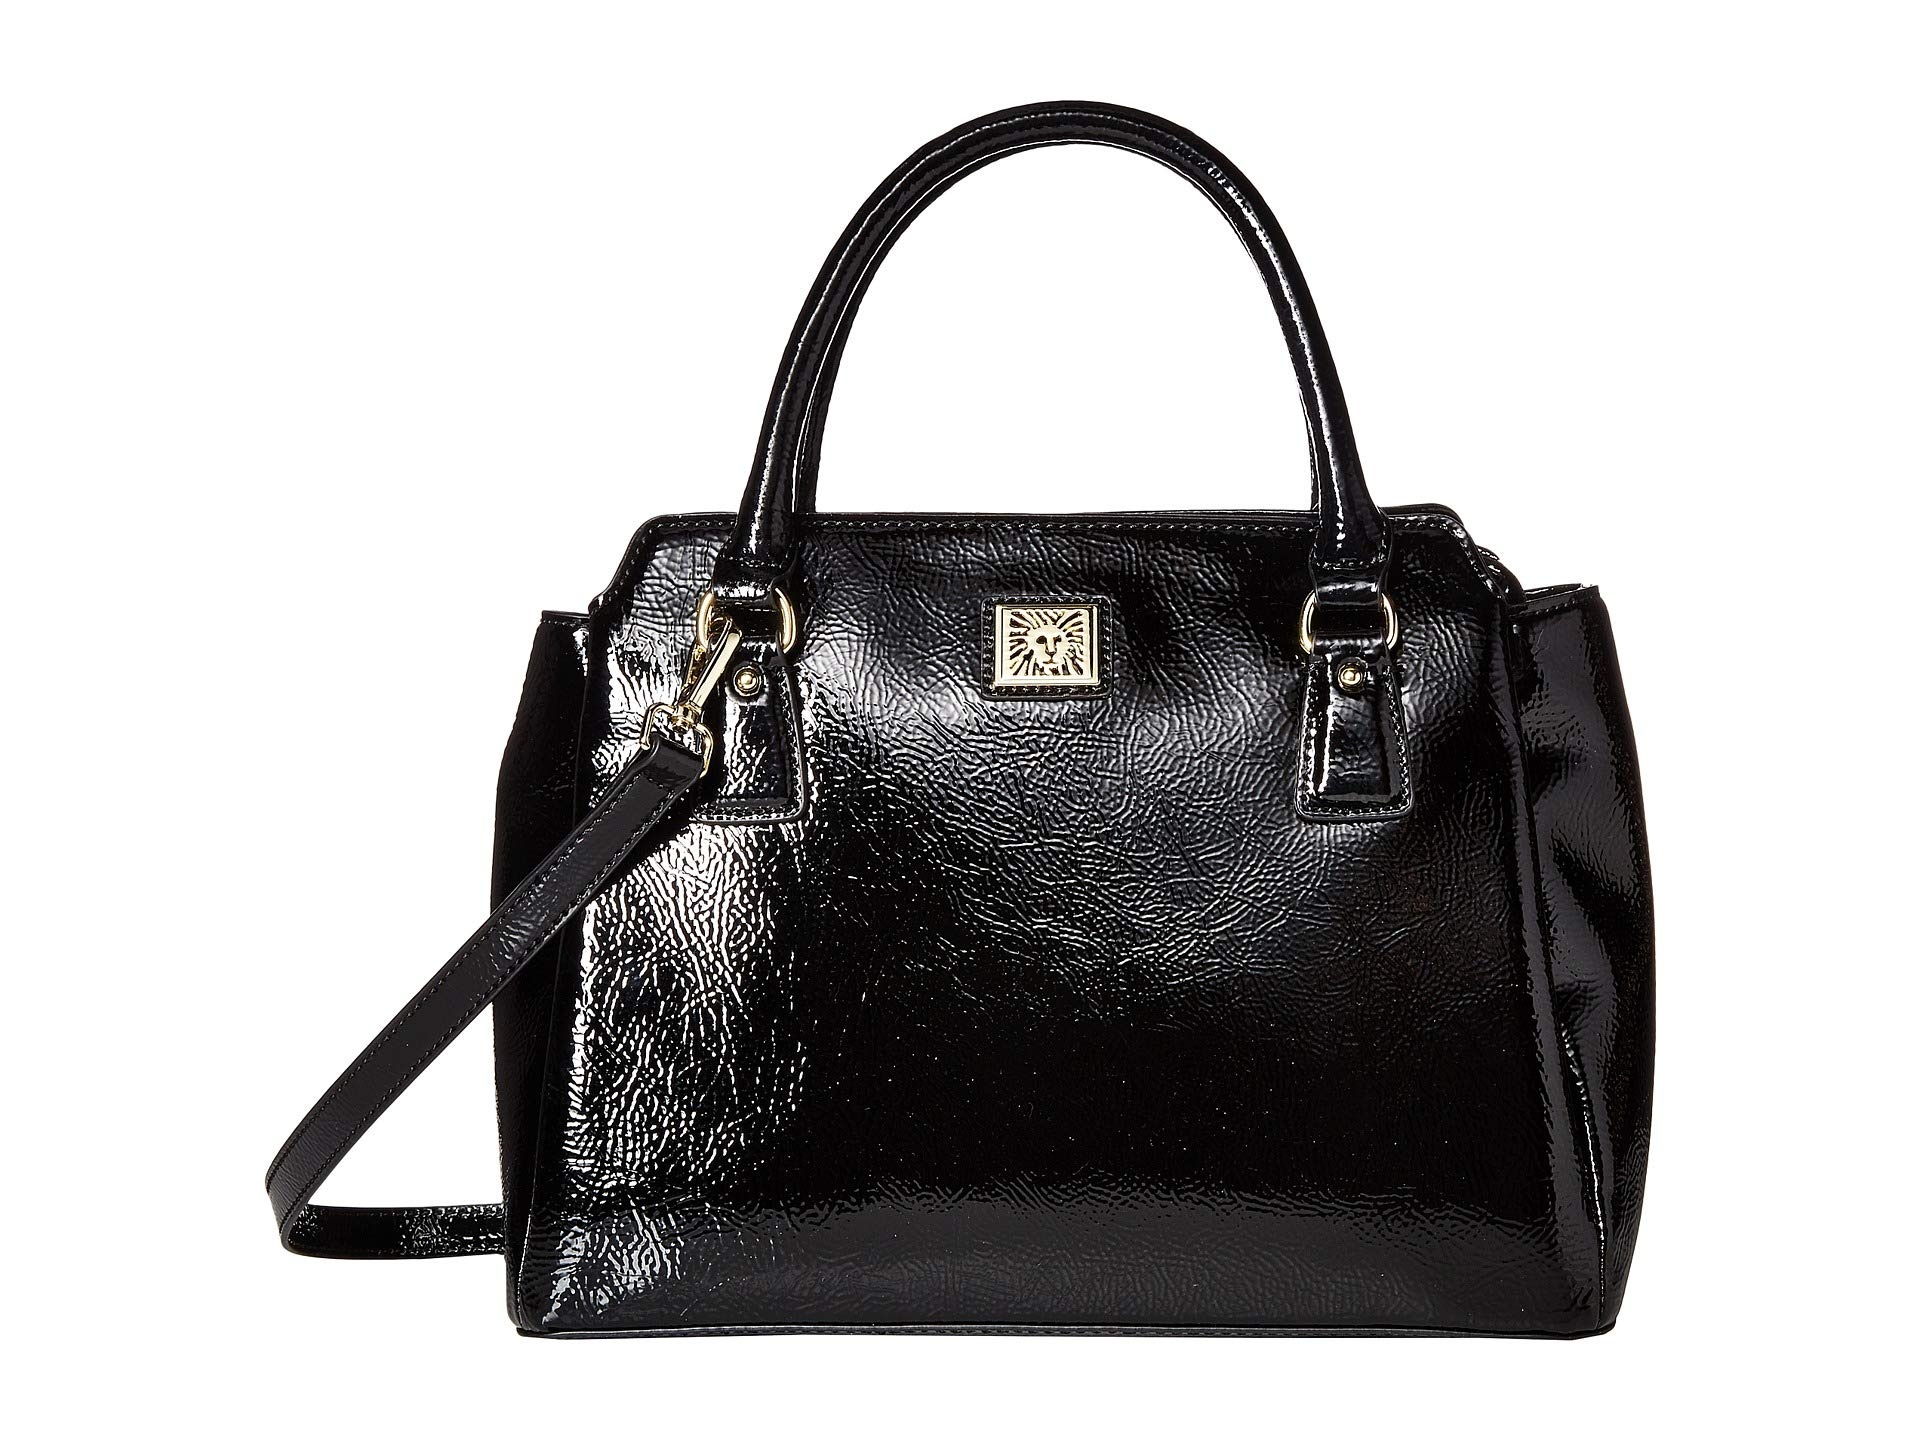 Klein Crinkle Compartment Satchel Black Triple Anne fAzH1qH